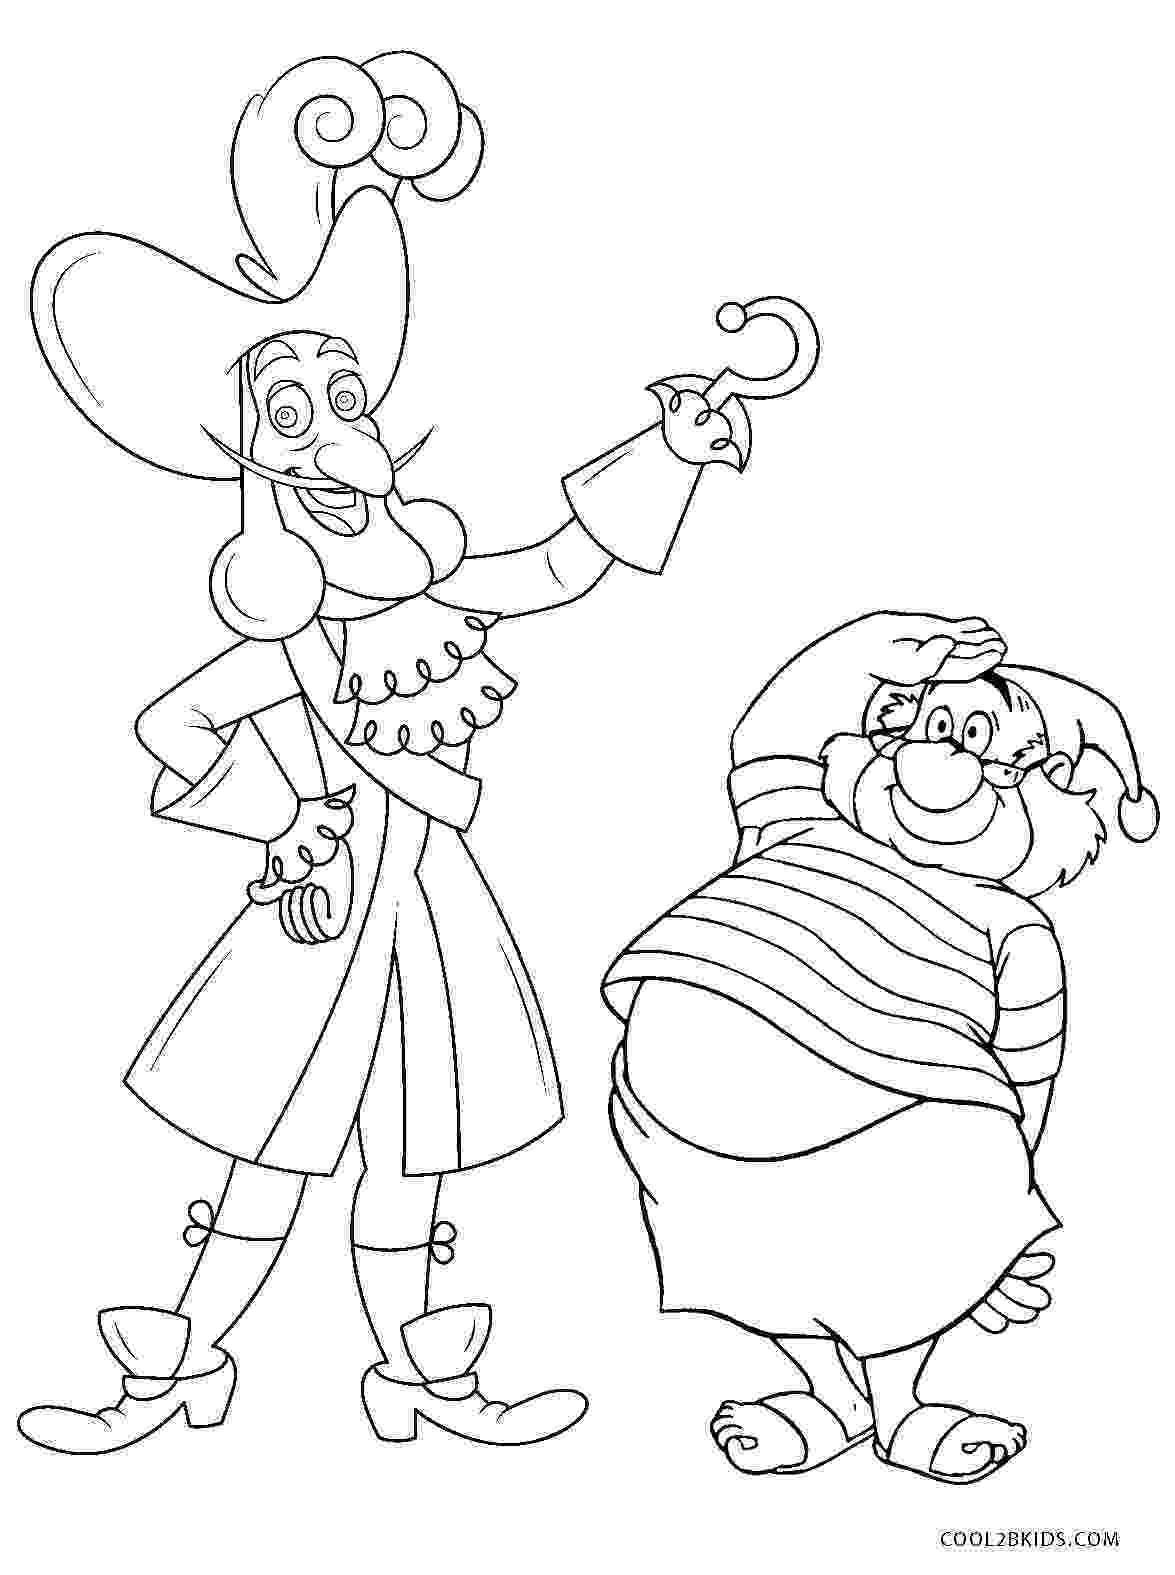 peter pan coloring pages transmissionpress disney peterpan flying coloring pages coloring peter pan pages